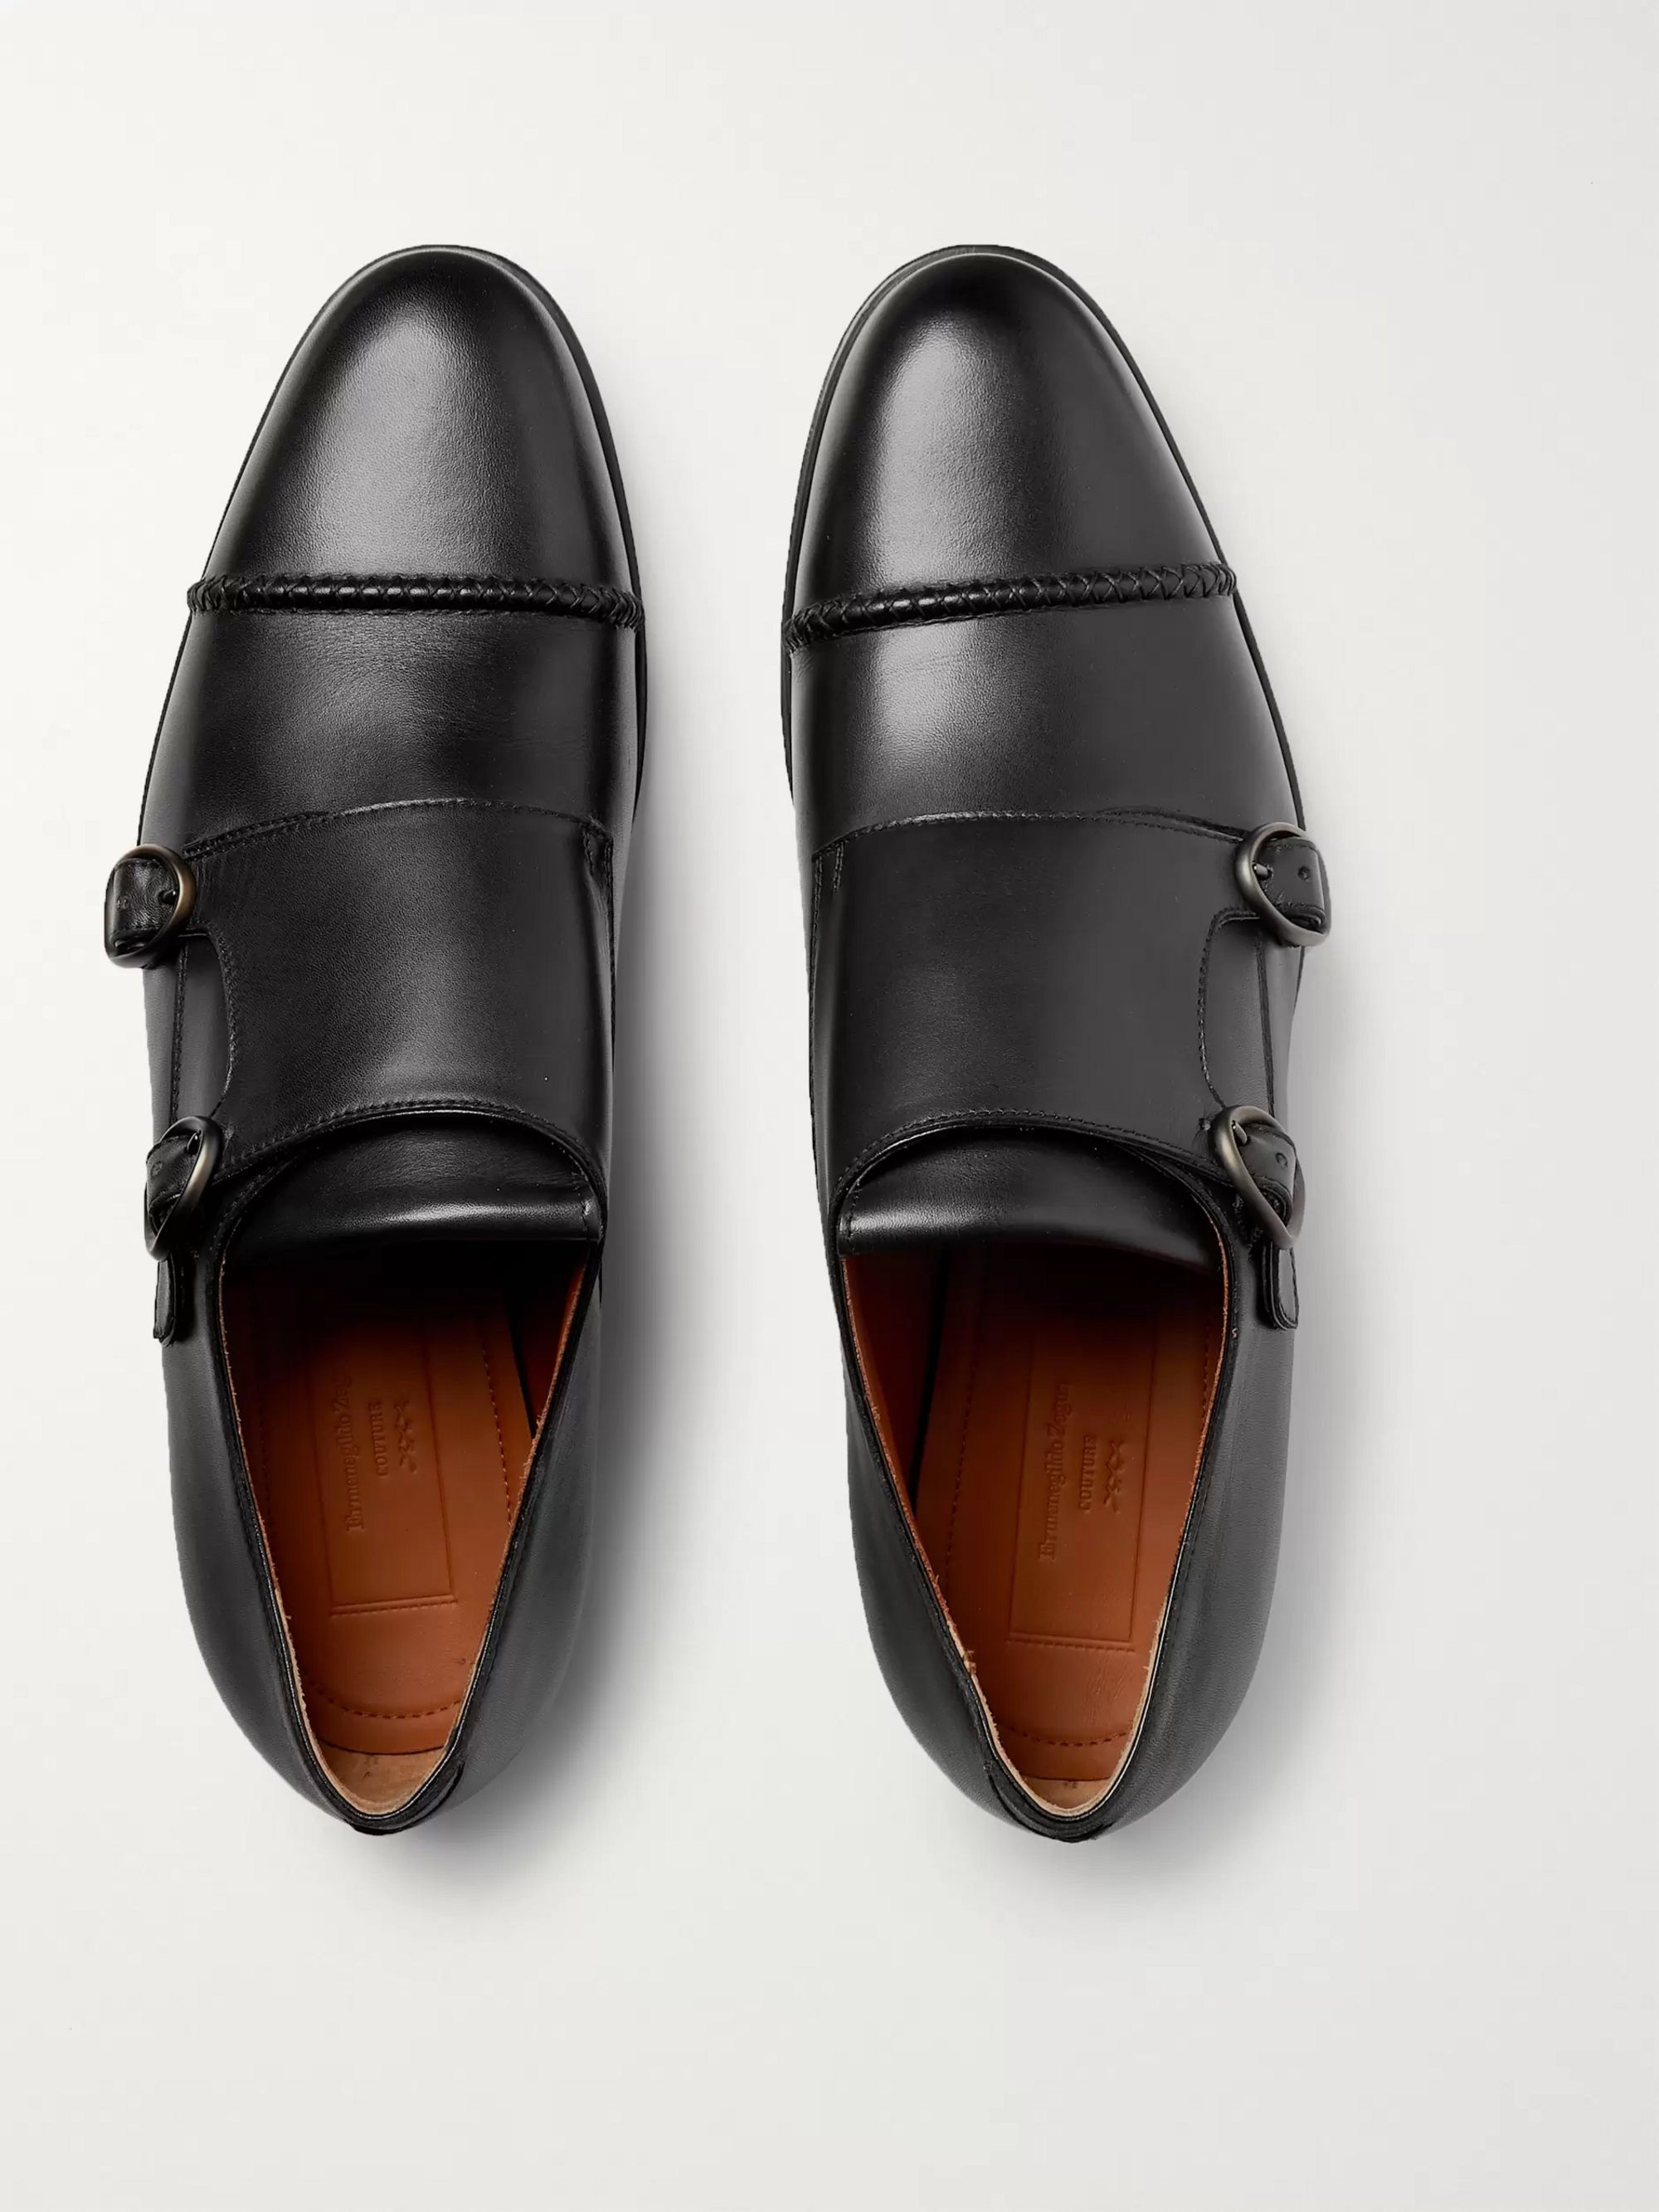 Ermenegildo Zegna Cap-Toe Leather Monk-Strap Shoes